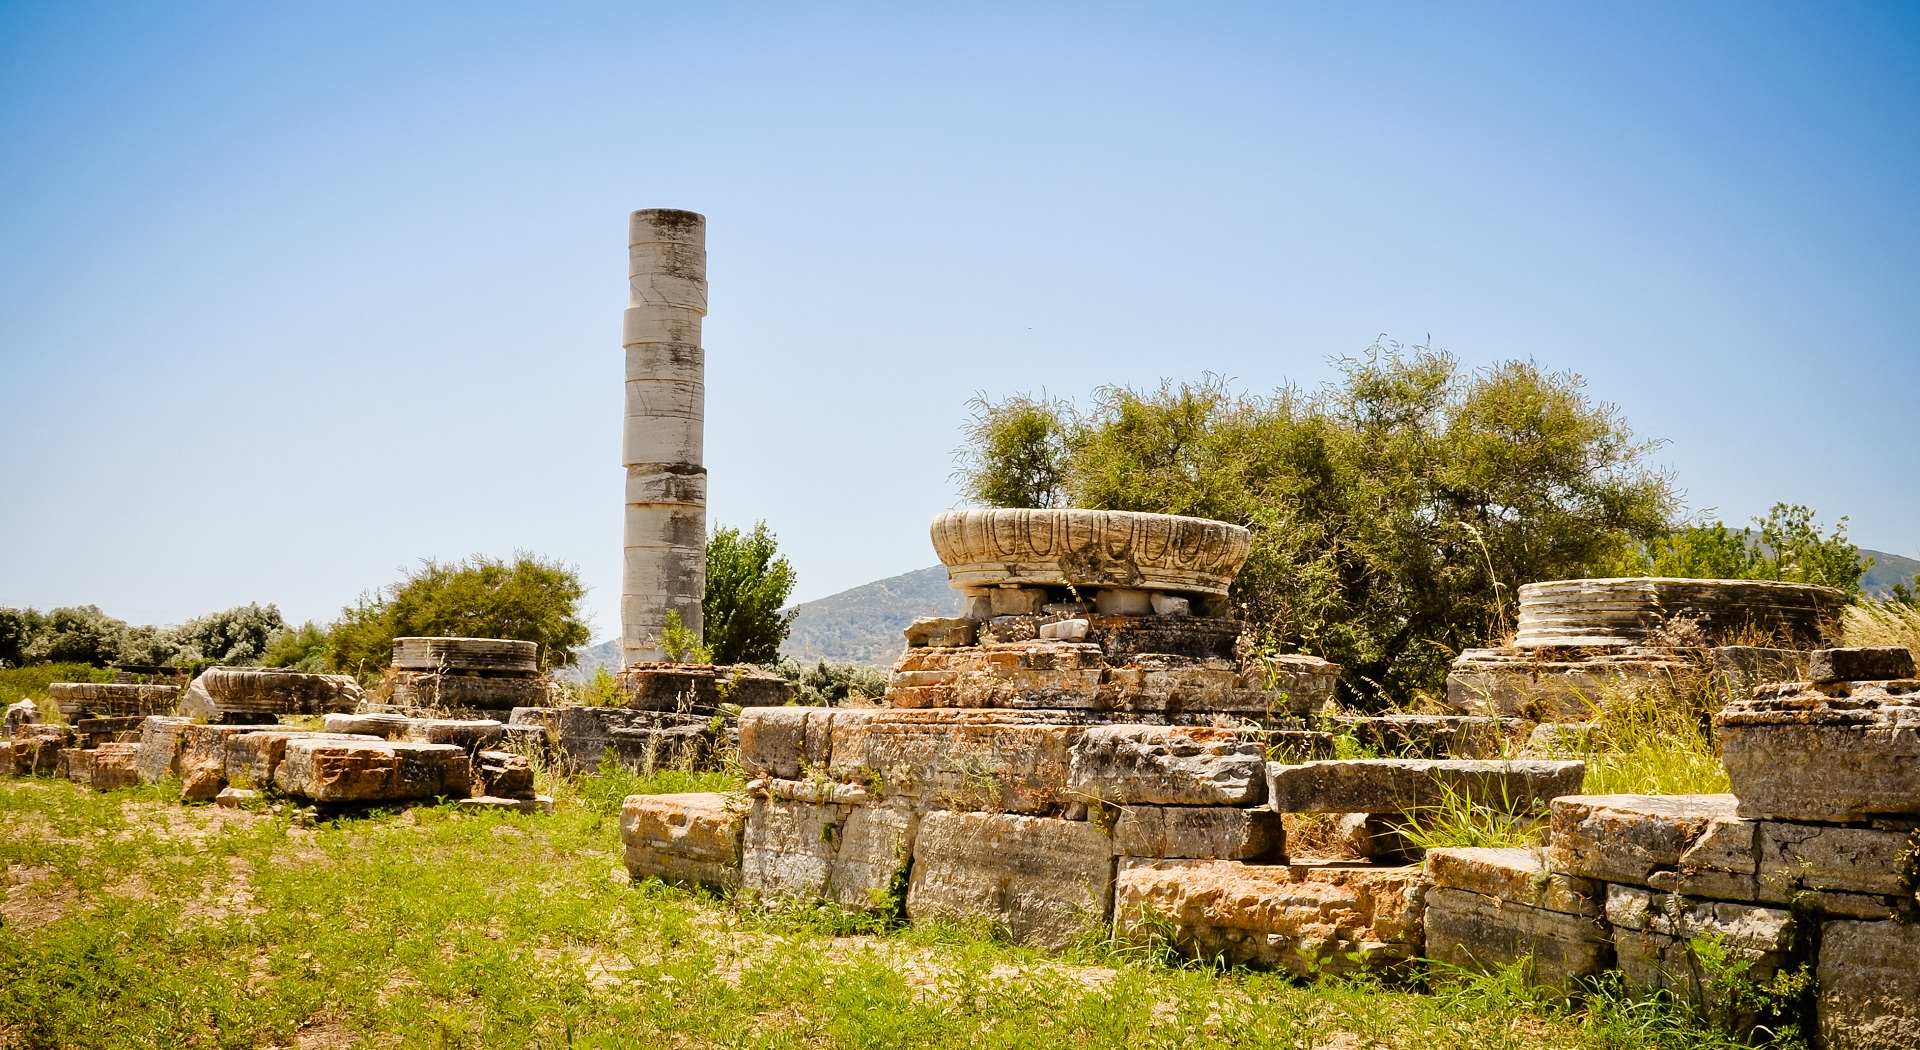 Remains of the ancient sanctuary of the goddess Hera located near town of Pythagoreion, Samos